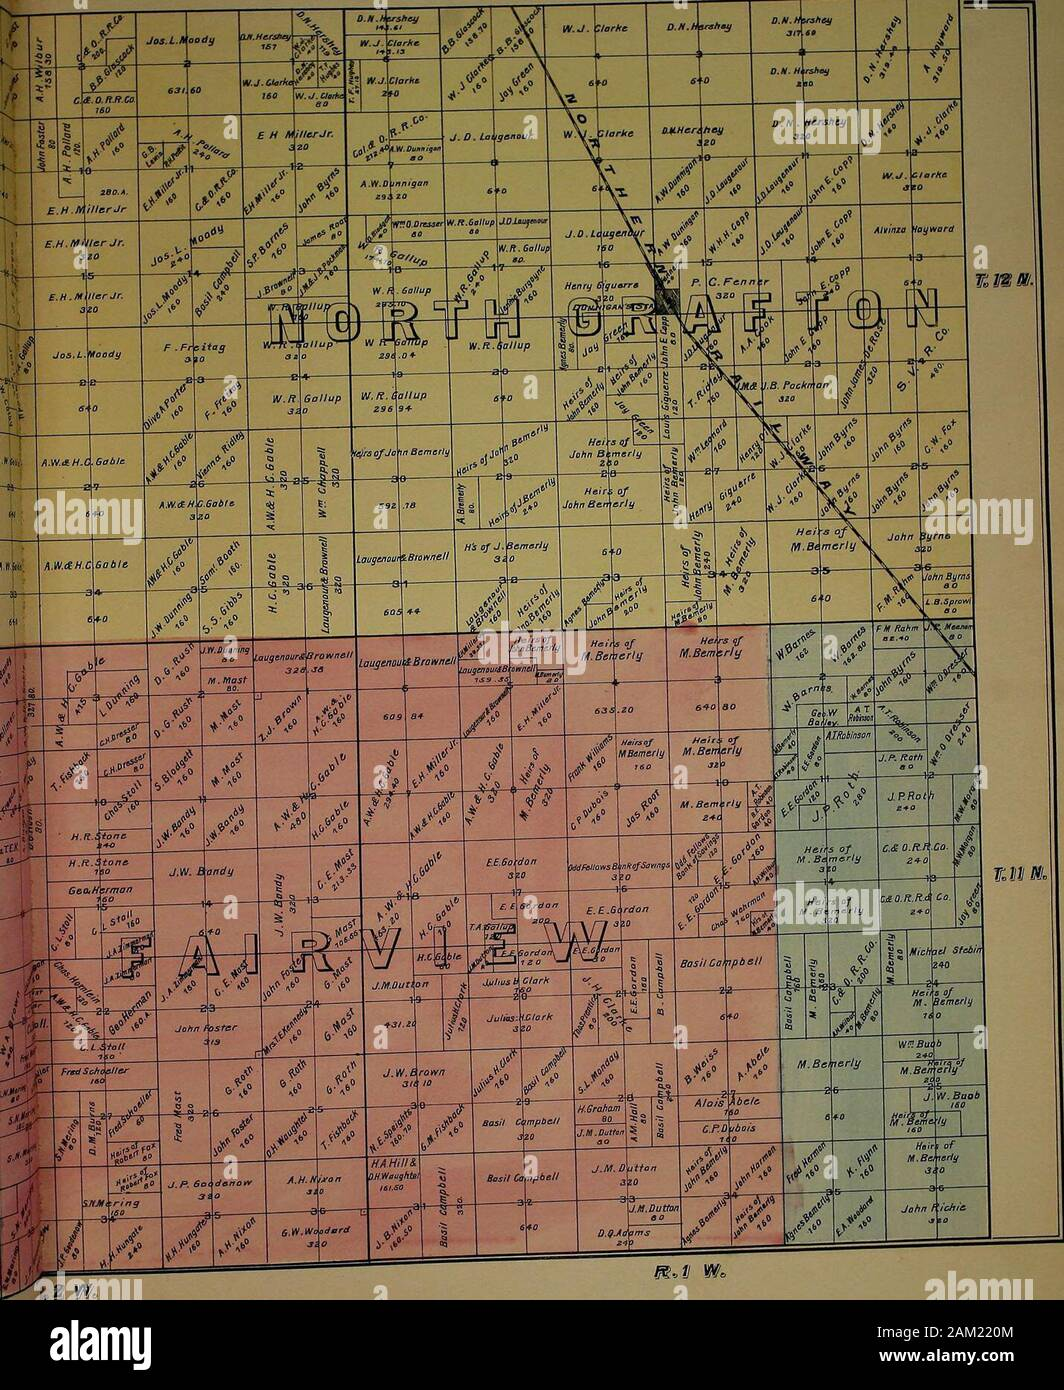 Picture of: The Illustrated Atlas And History Of Yolo County Cal Containing A History Of California From 1513 To 1850 A History Of Yolo County From 1825 To 1880 With Statistics Portraits Of Well Known